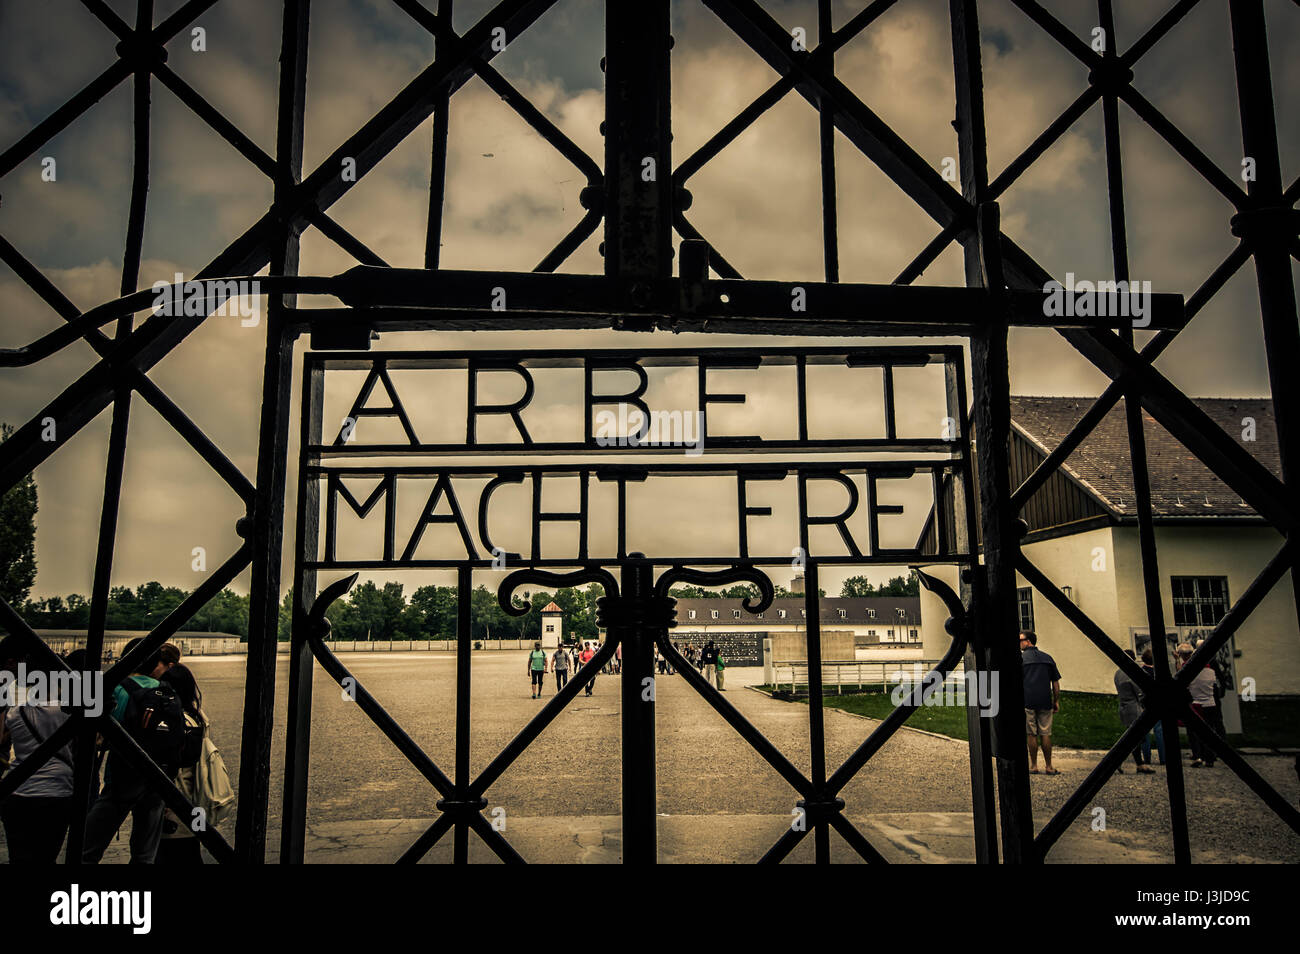 Außenwand Dekoration Metall Torture Chambers Stockfotos And Torture Chambers Bilder Alamy